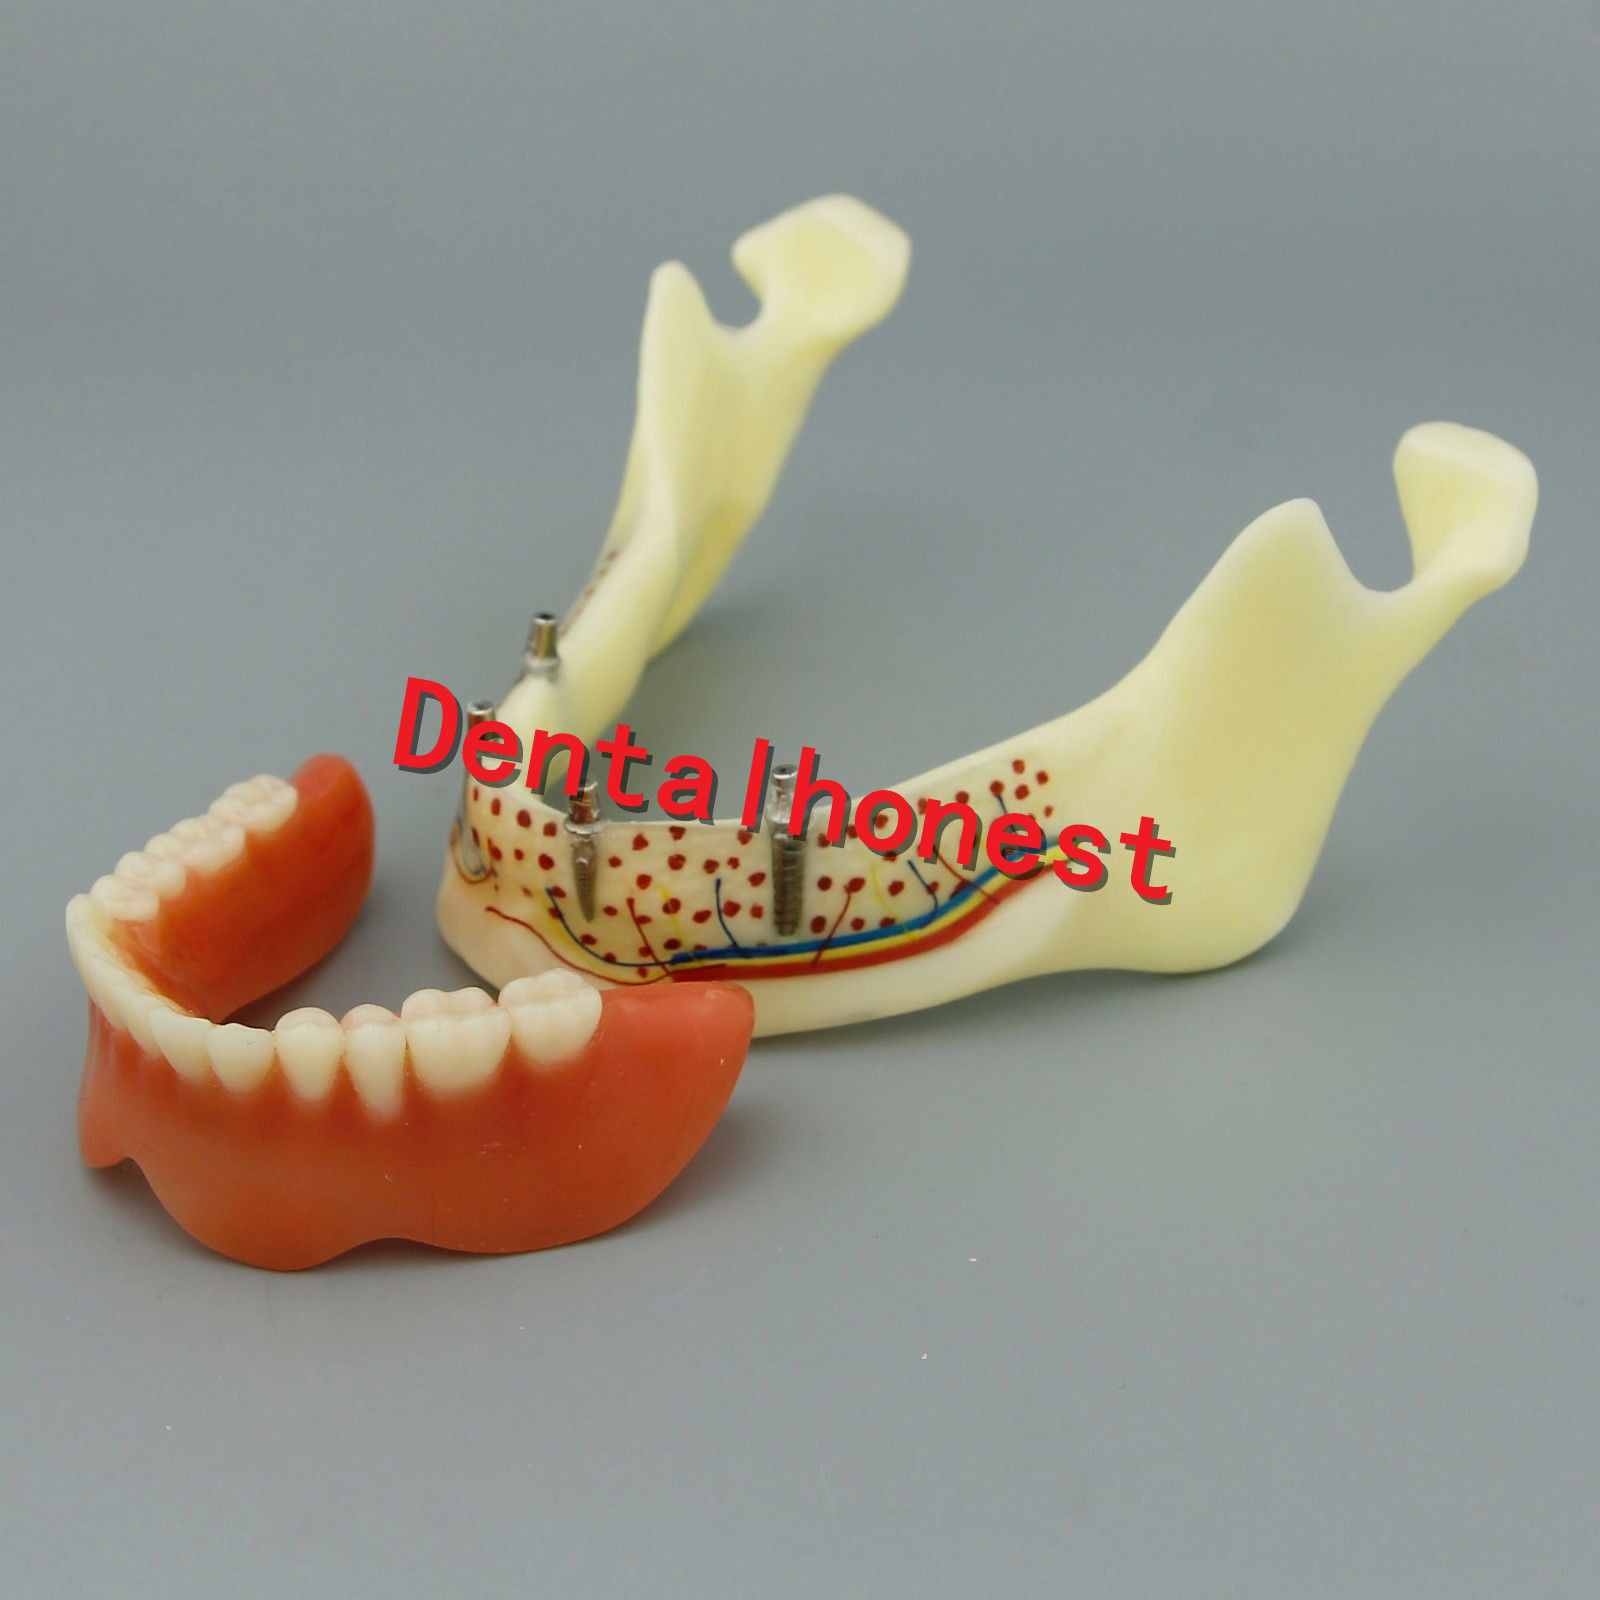 Dental Mandible Implant Overdenture Teeth Model with vessels Demo Model 2014 велосипед specialized demo 8 i 2014